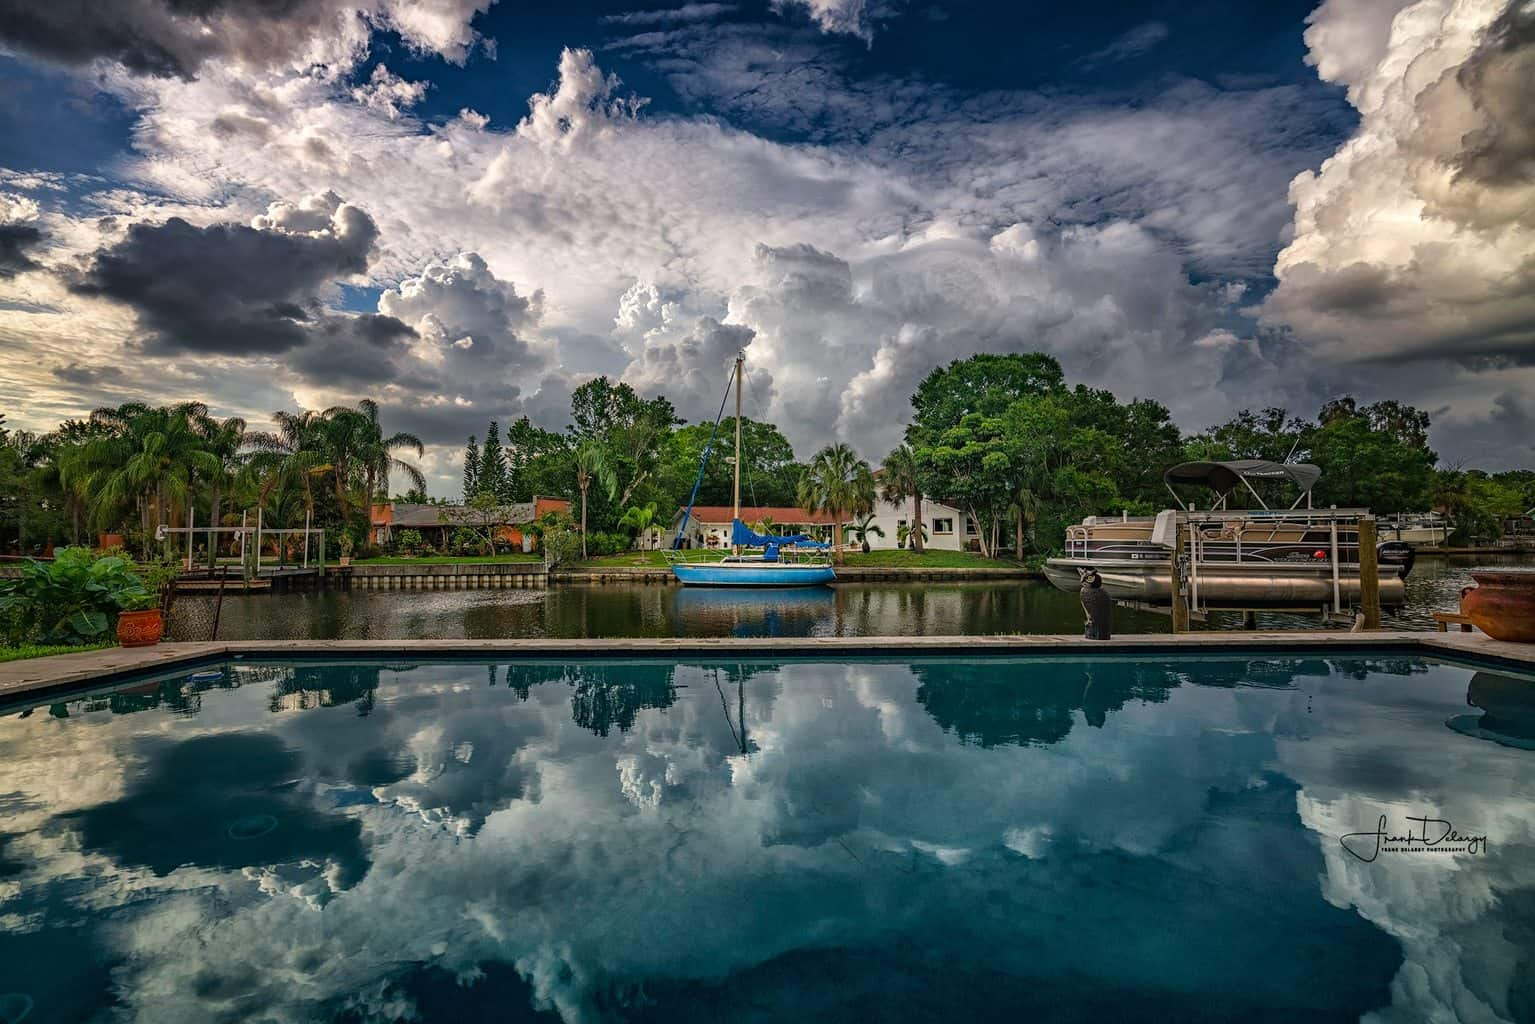 Before the rain.. Tampa's.summer weather pattern begins.